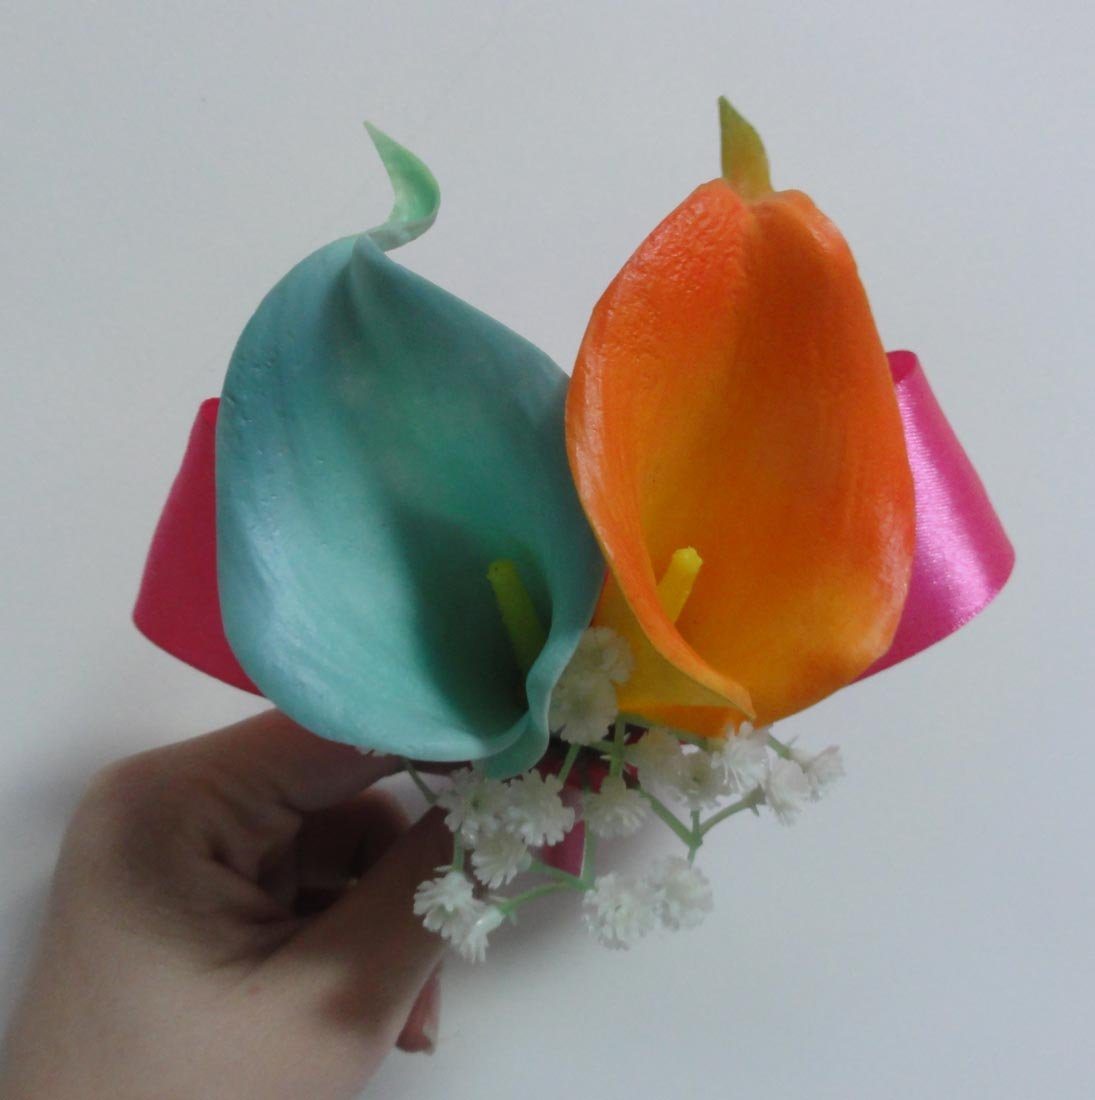 Lily-Garden-Real-Touch-Two-Calla-Lily-Boutonniere-Corsage-Customize